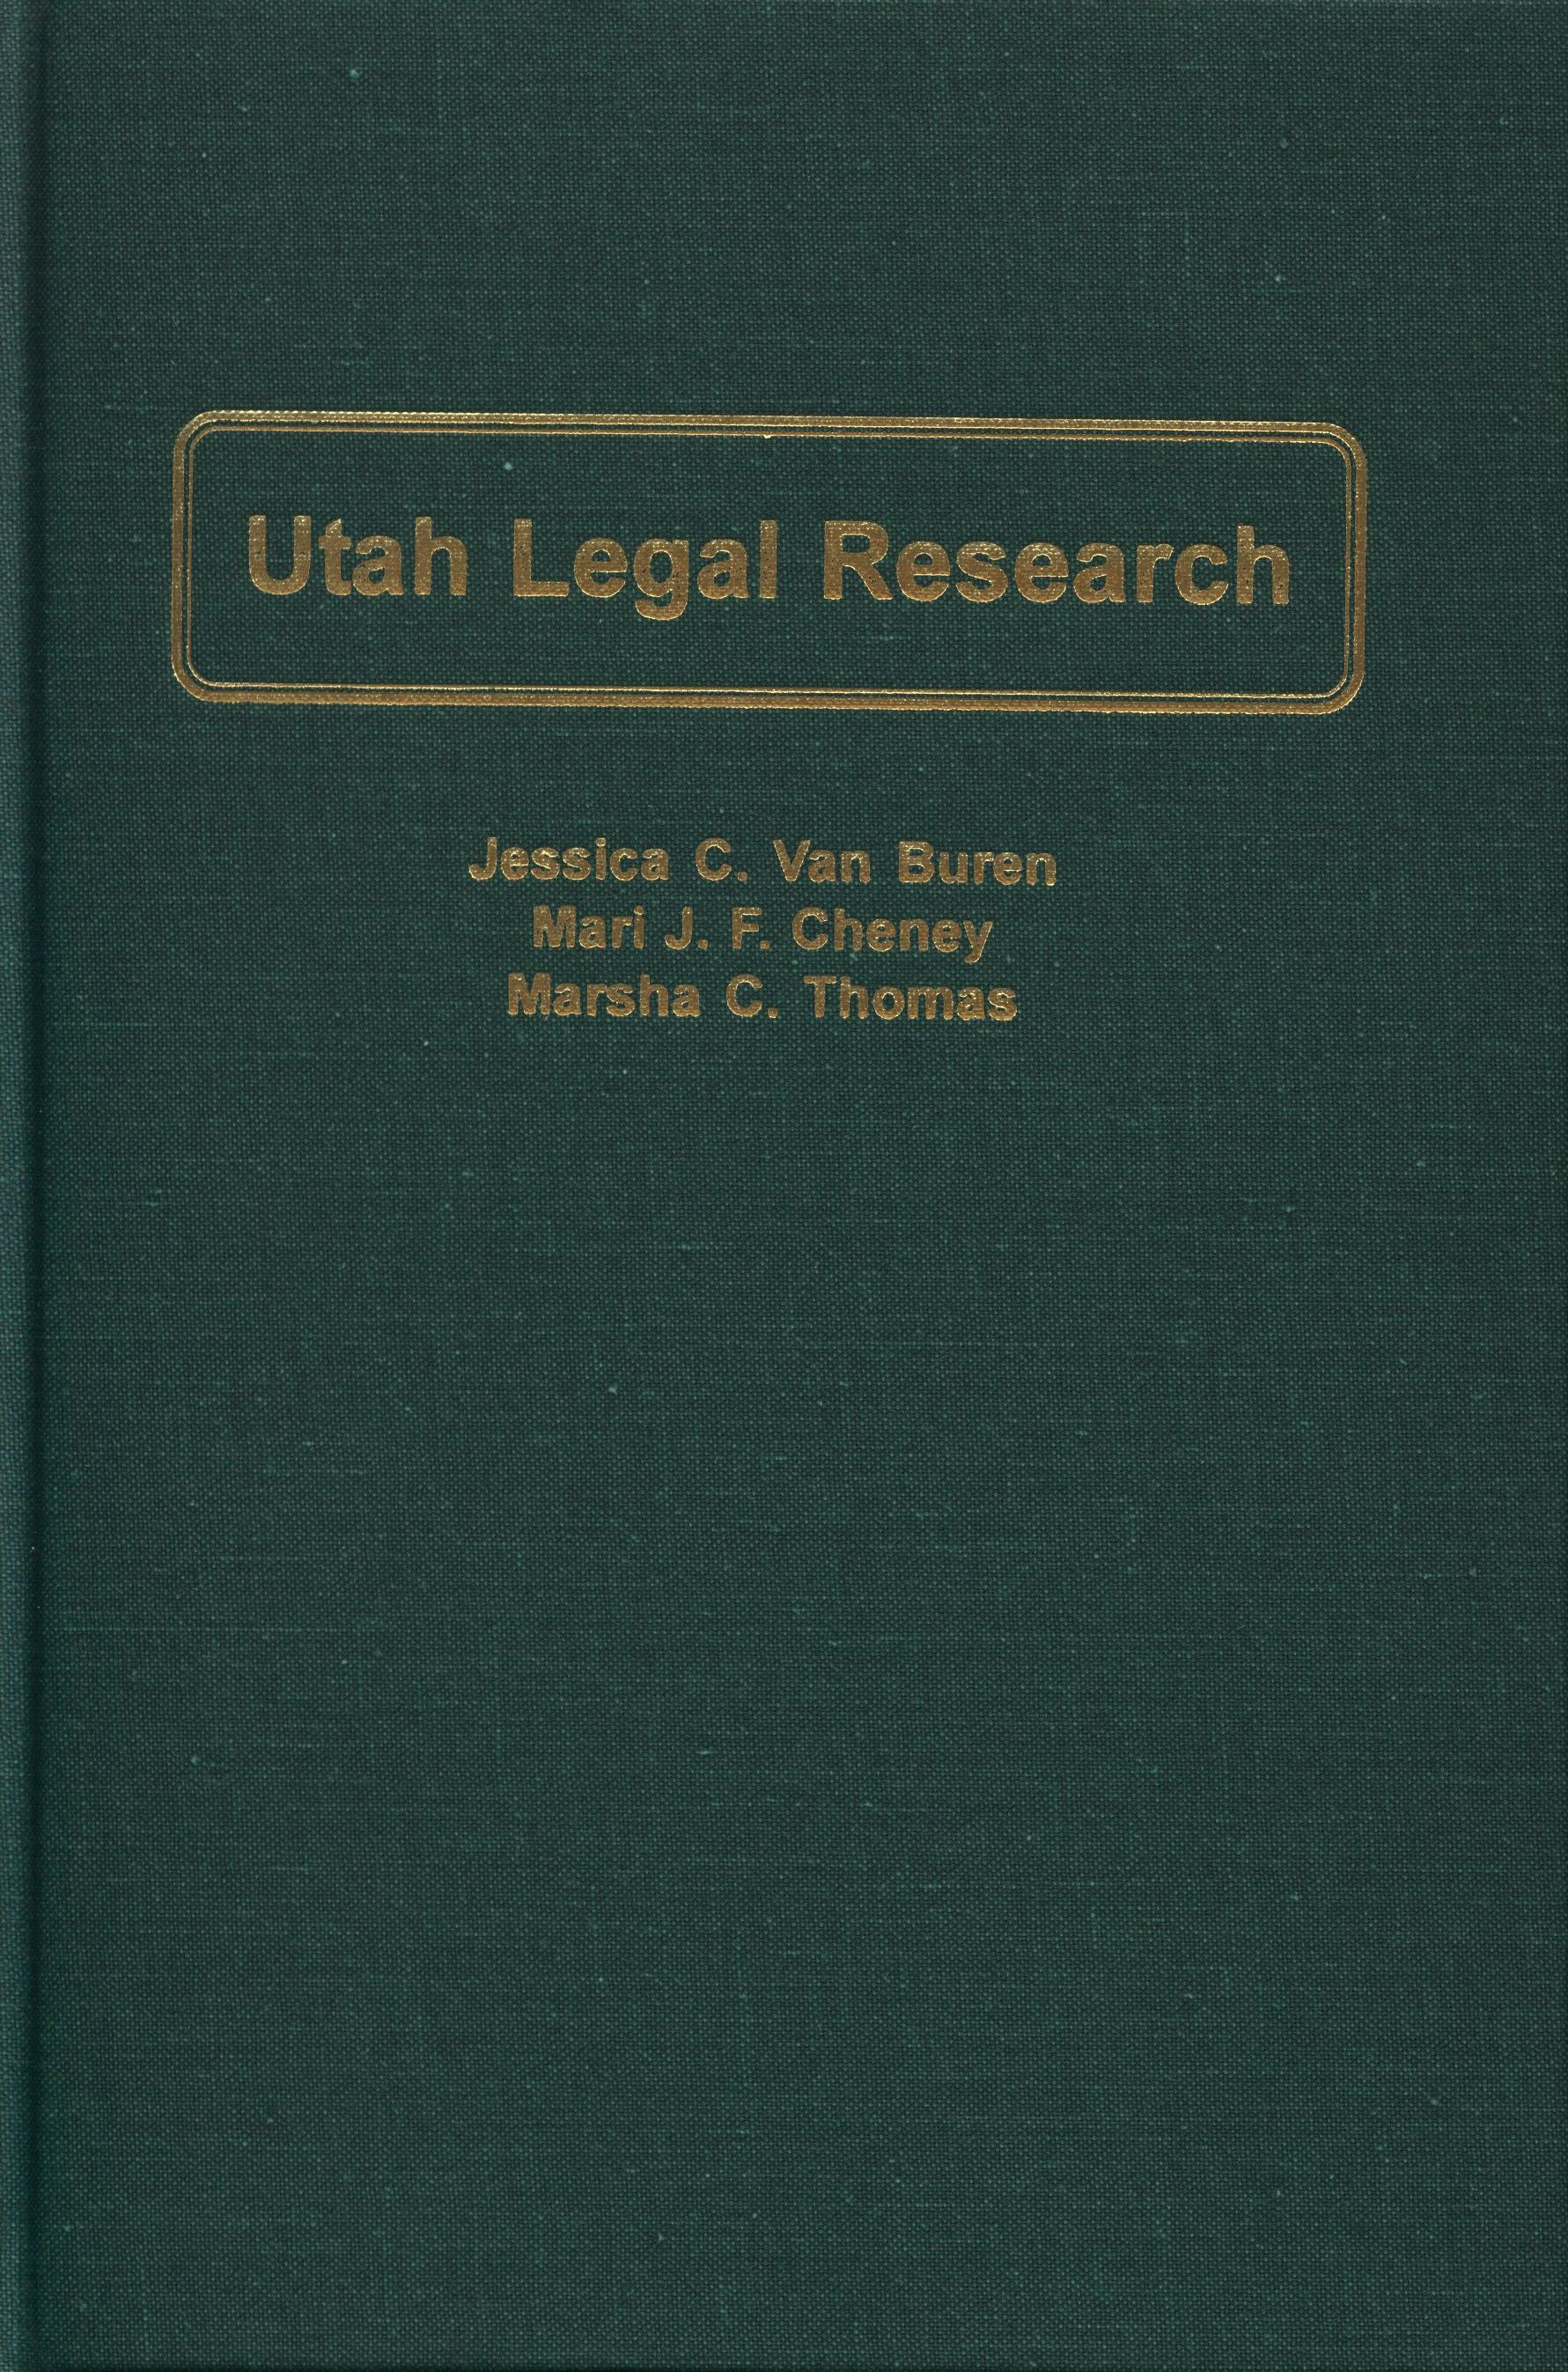 UtahLegalResearch.jpg